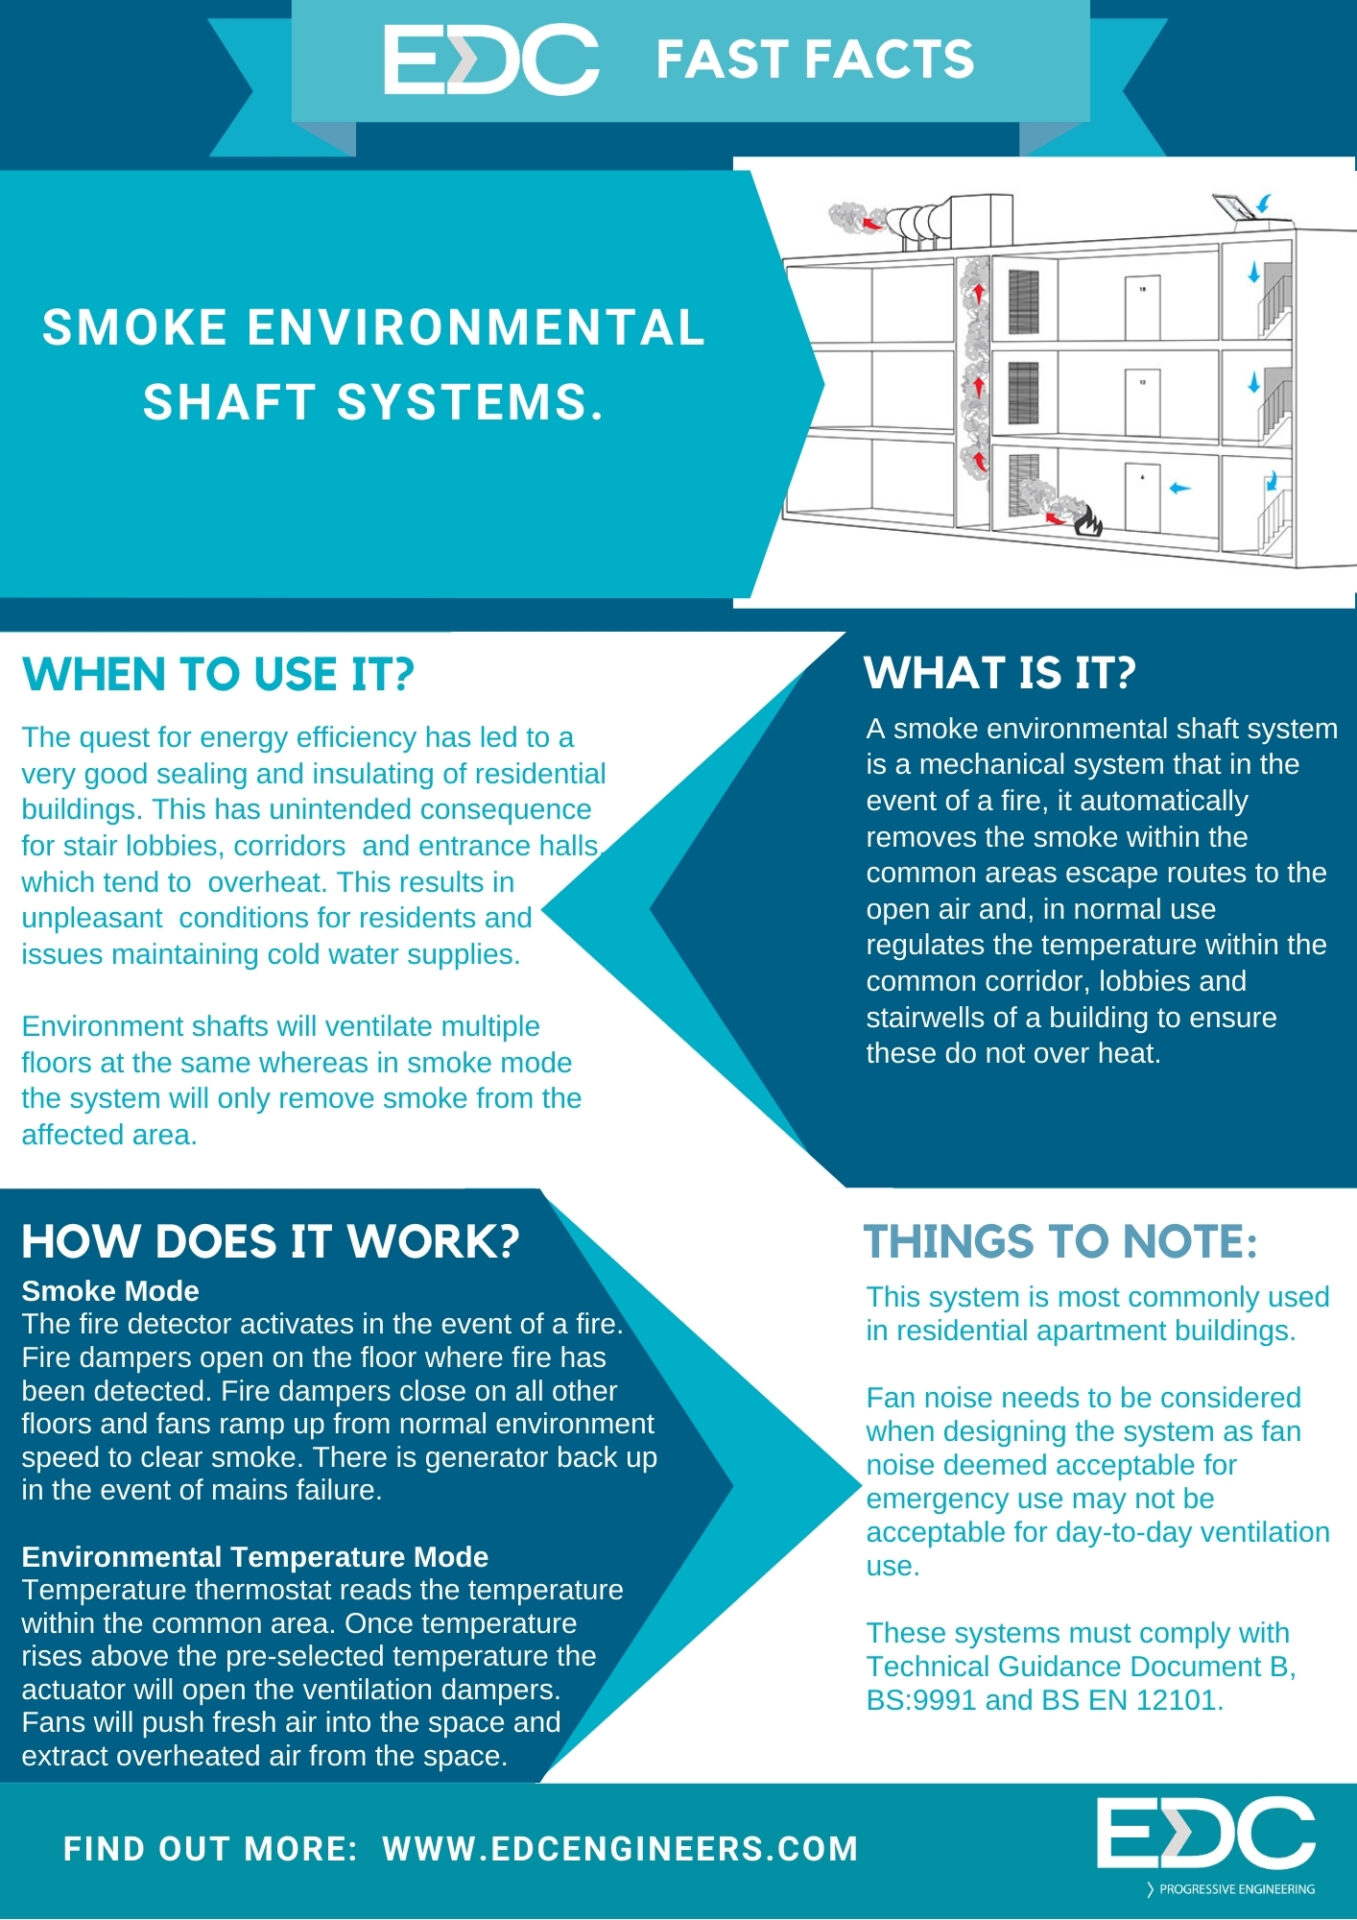 EDC Fast Facts 15: Smoke Environmental Shaft Systems.